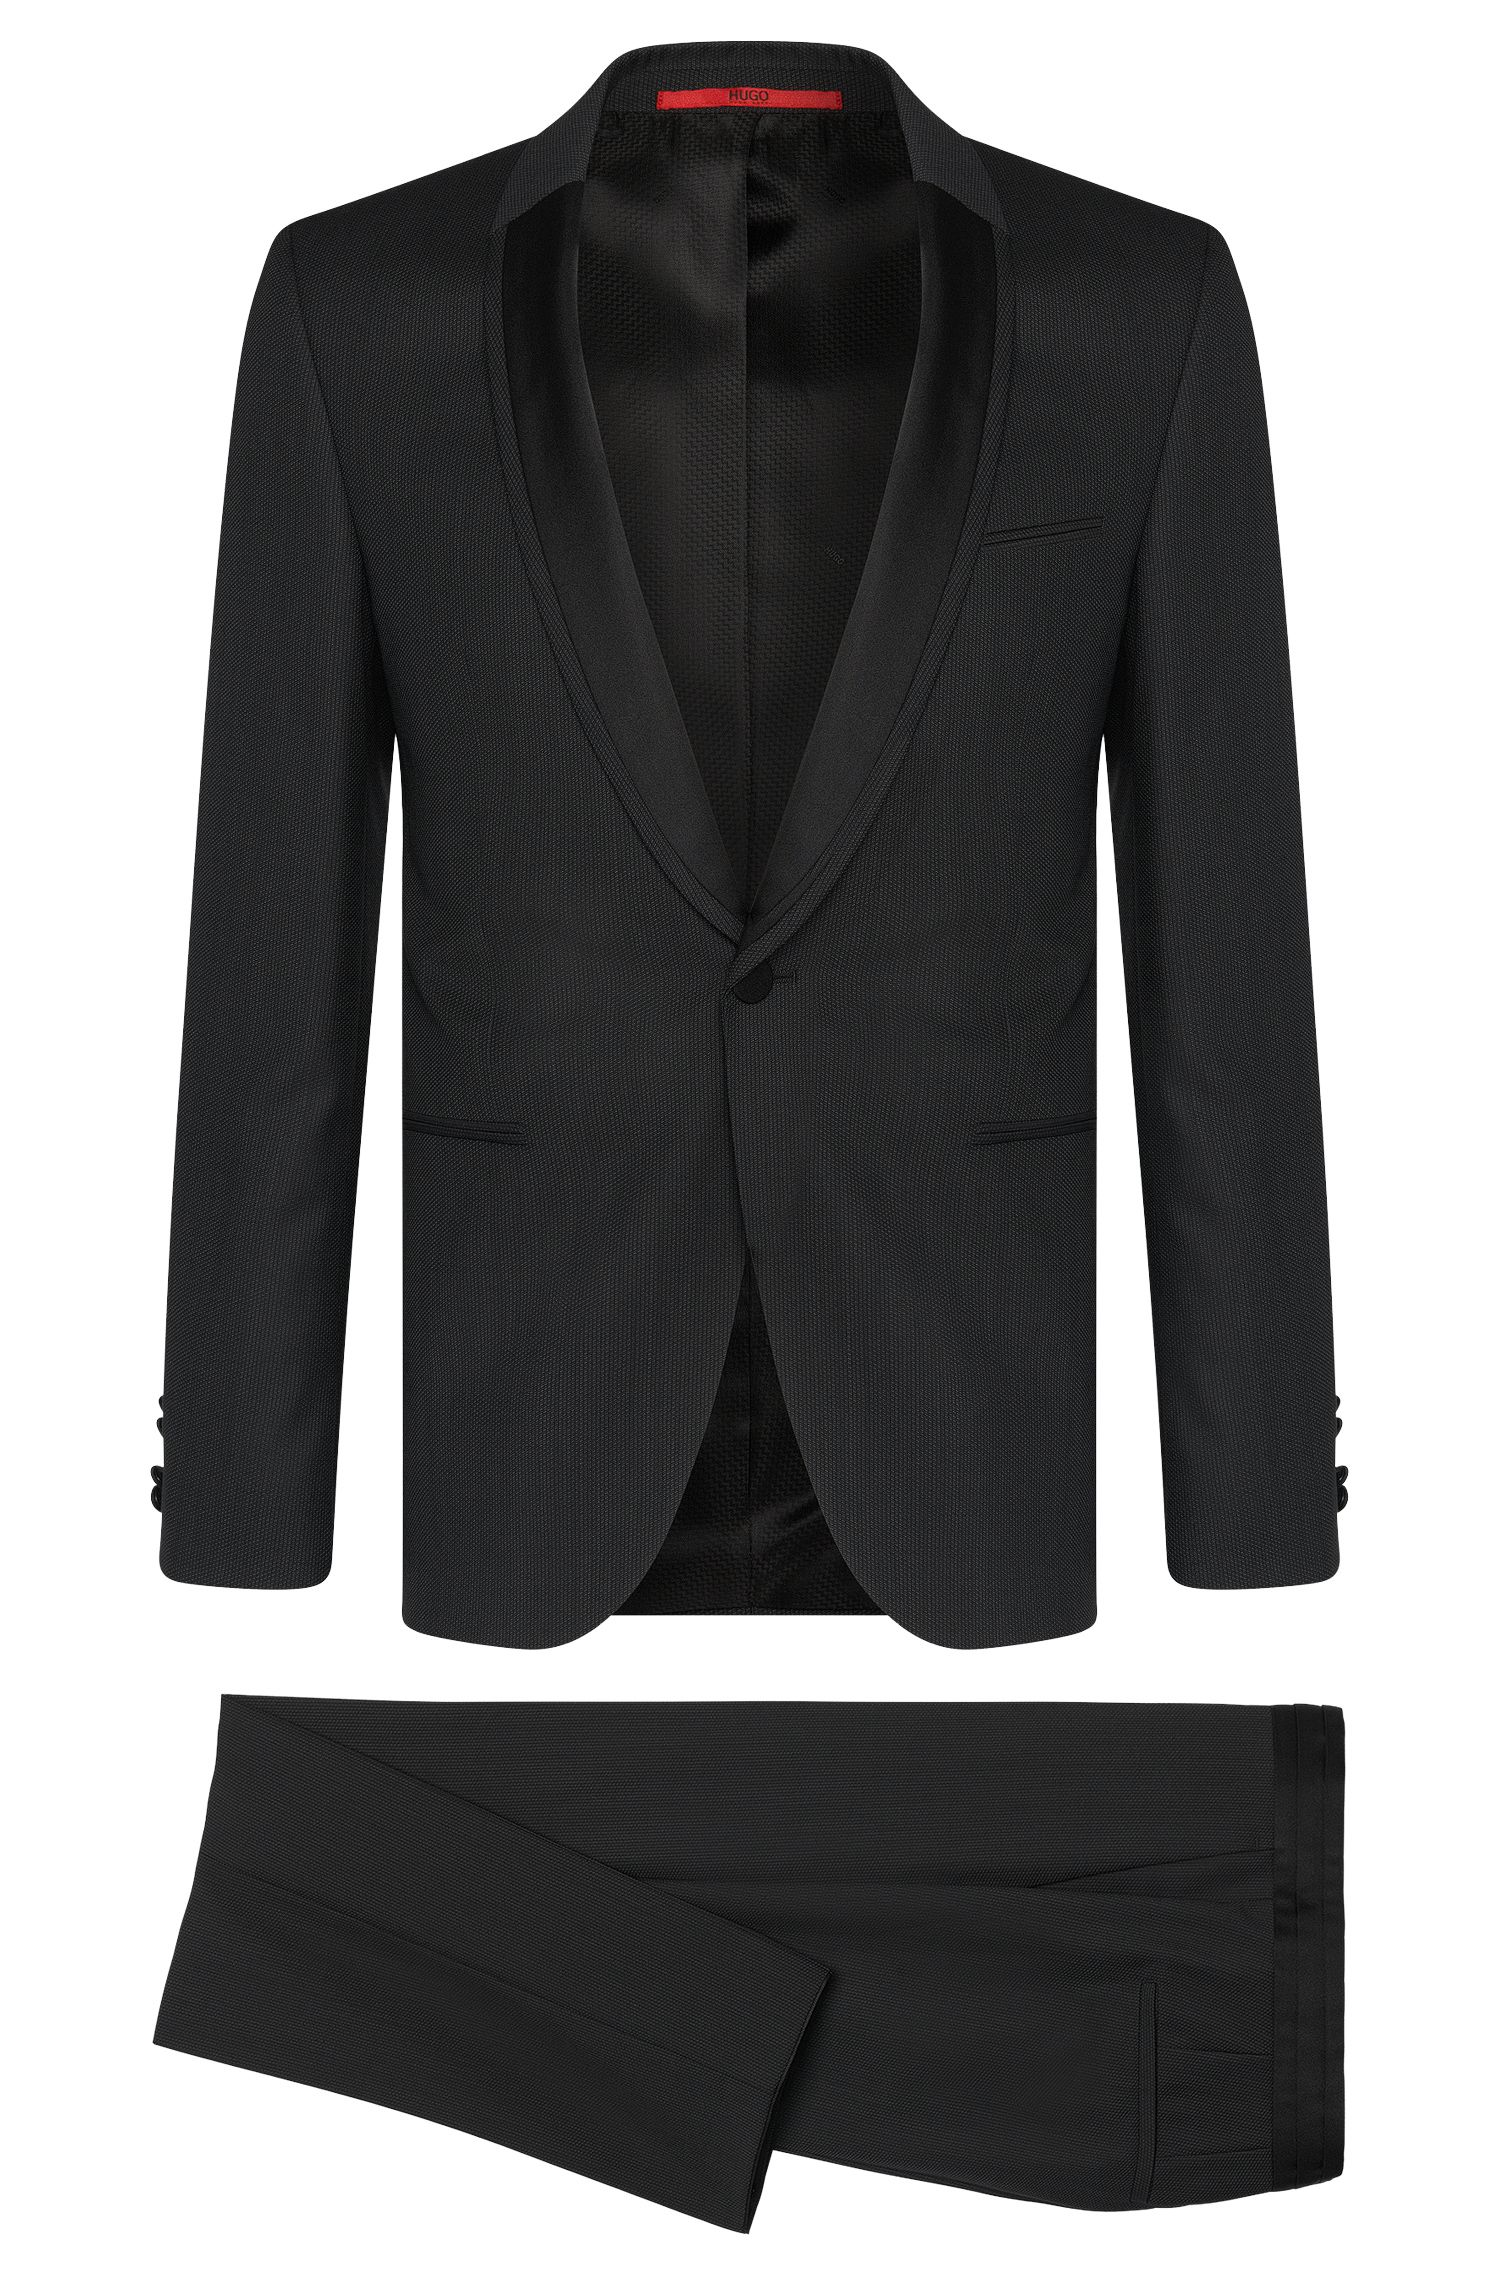 Super 110 Virgin Wool Tuxedo, Extra-Slim Fit | Anros/Himans